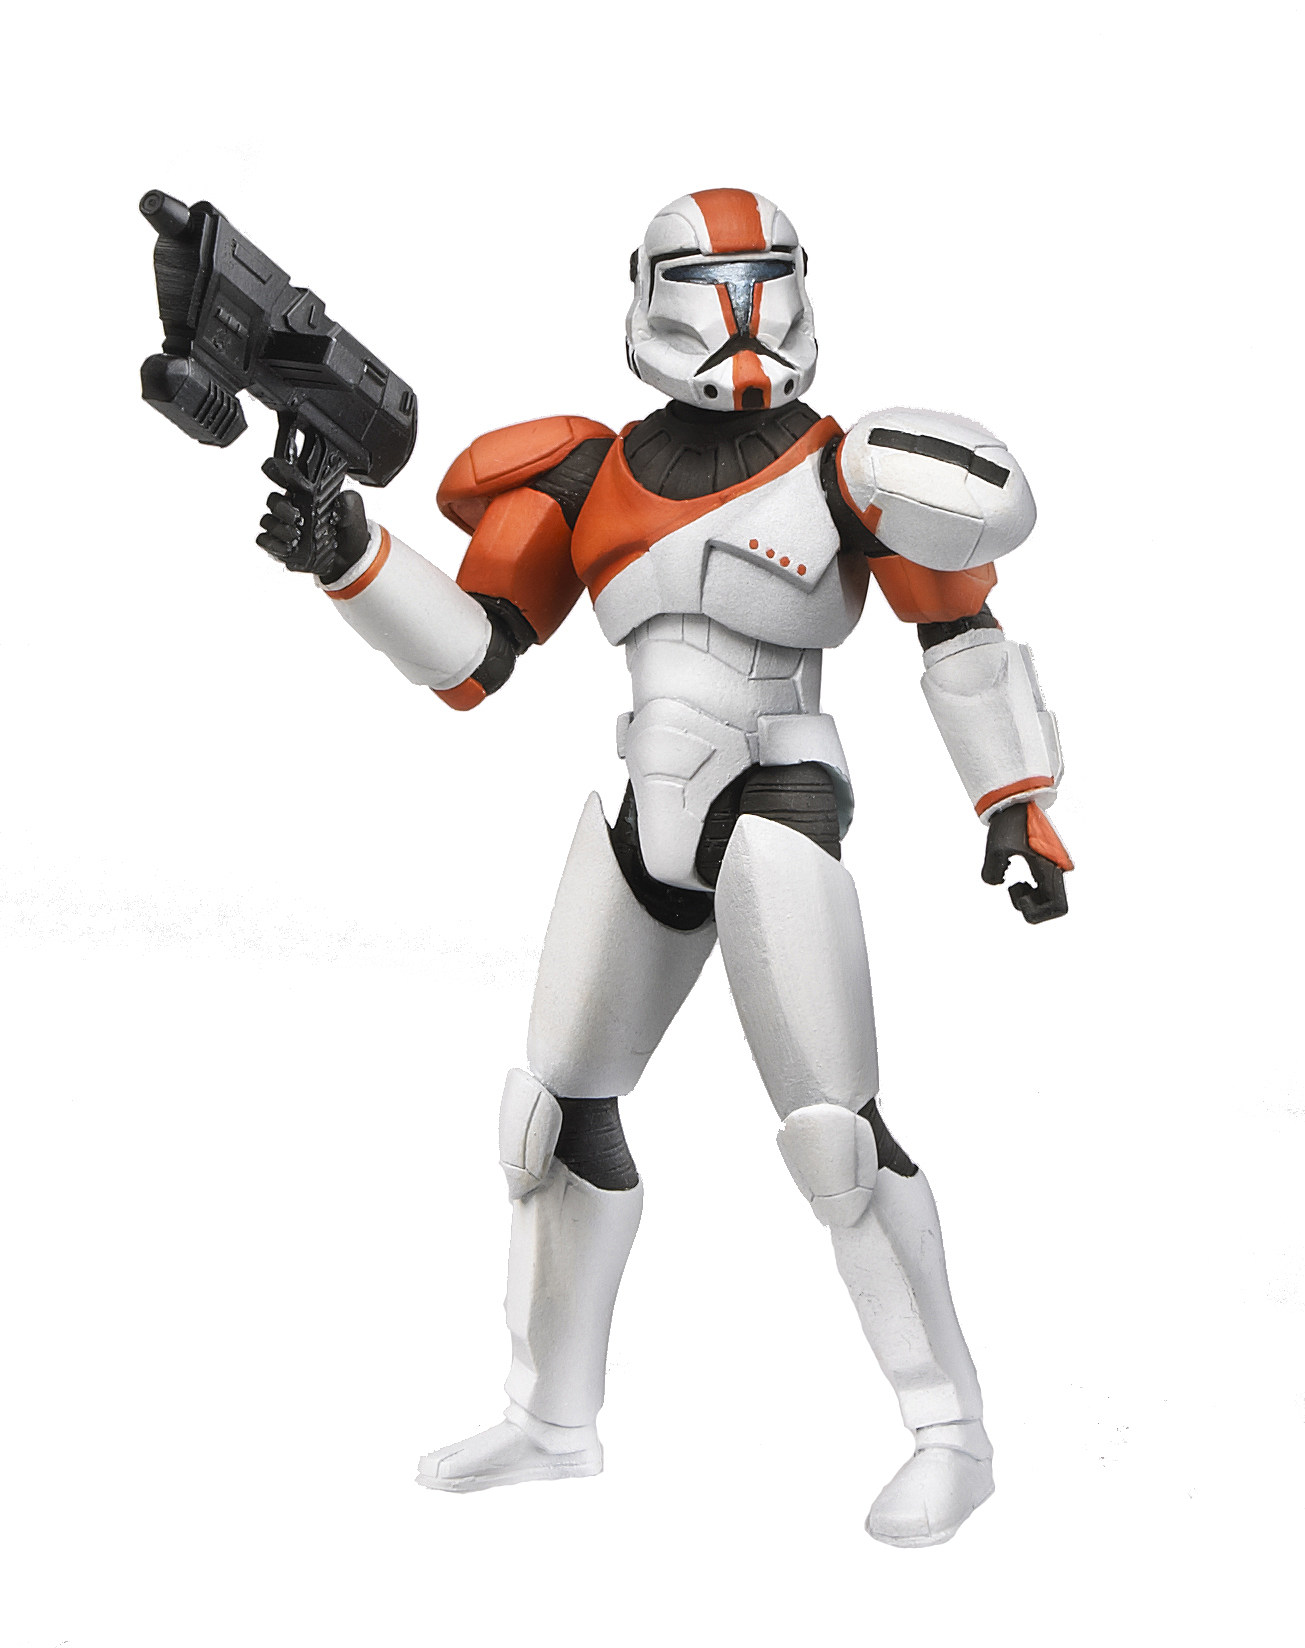 hasbro unveils upcoming star wars action figures toy fair 2012